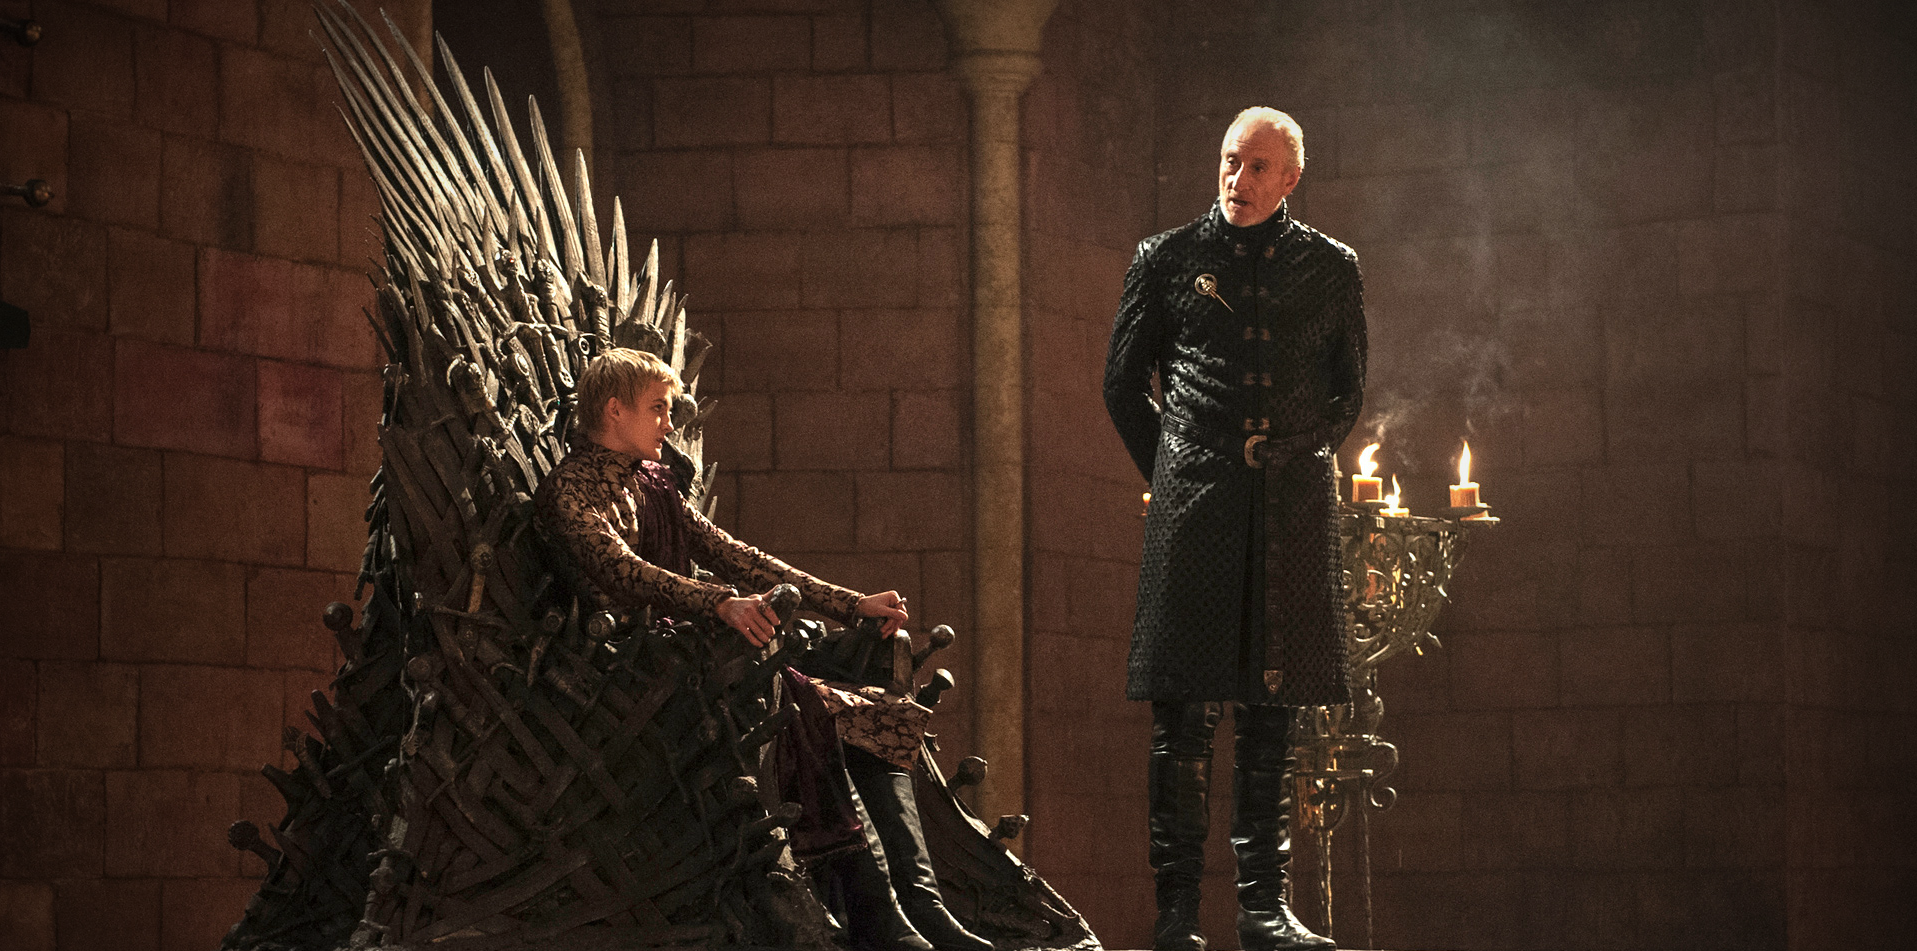 'Game of Thrones' Remembers the Dearly Departed [Comic-Con 2013] – /Film